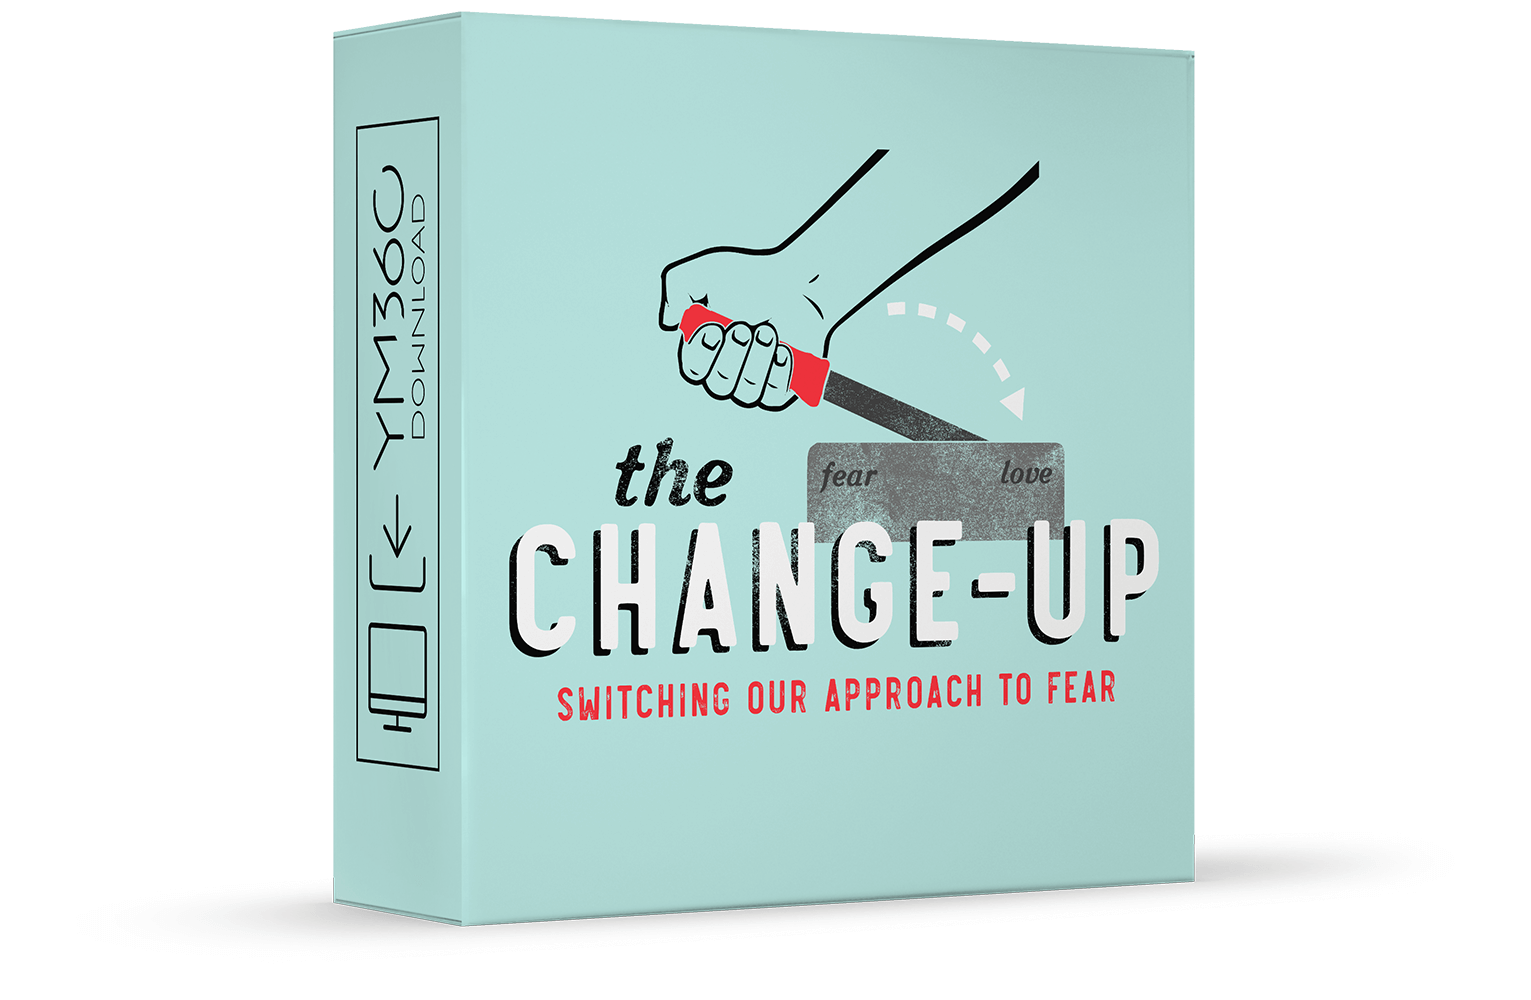 The Change-Up: Switching Our Approach to Fear